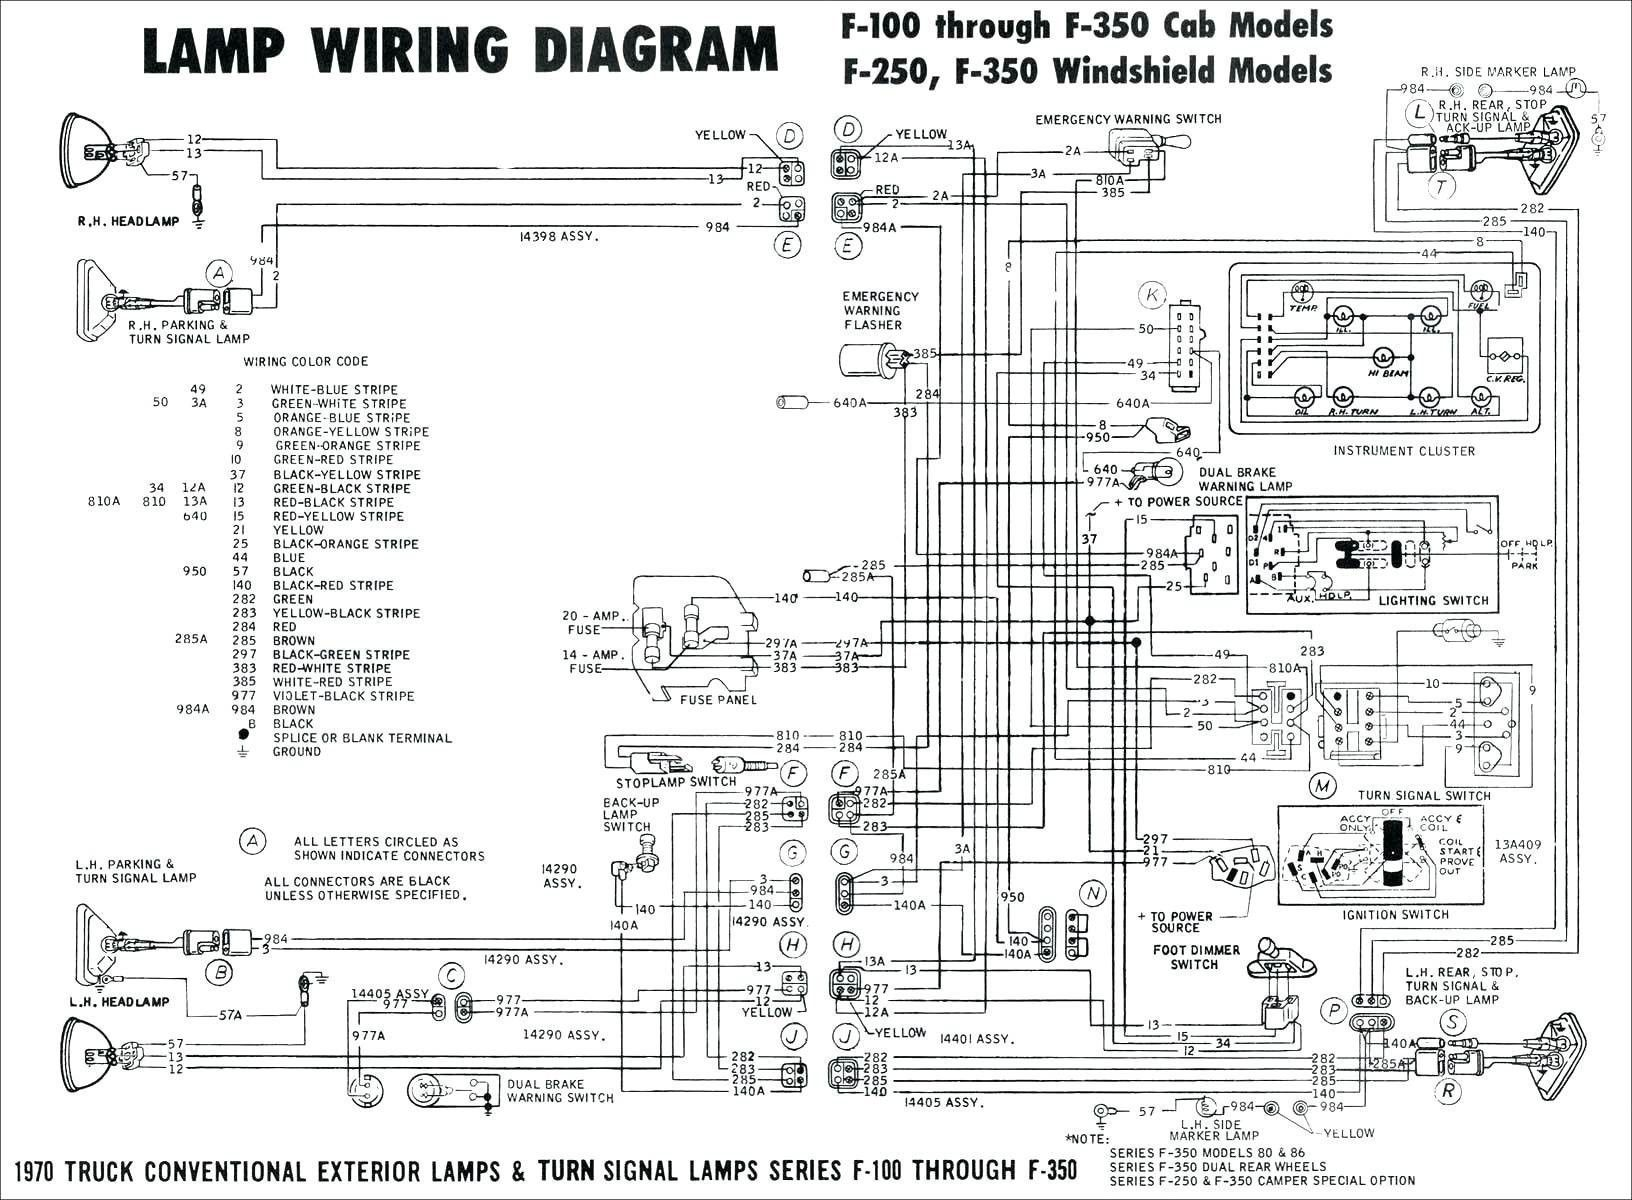 Pin On Wiring Cable